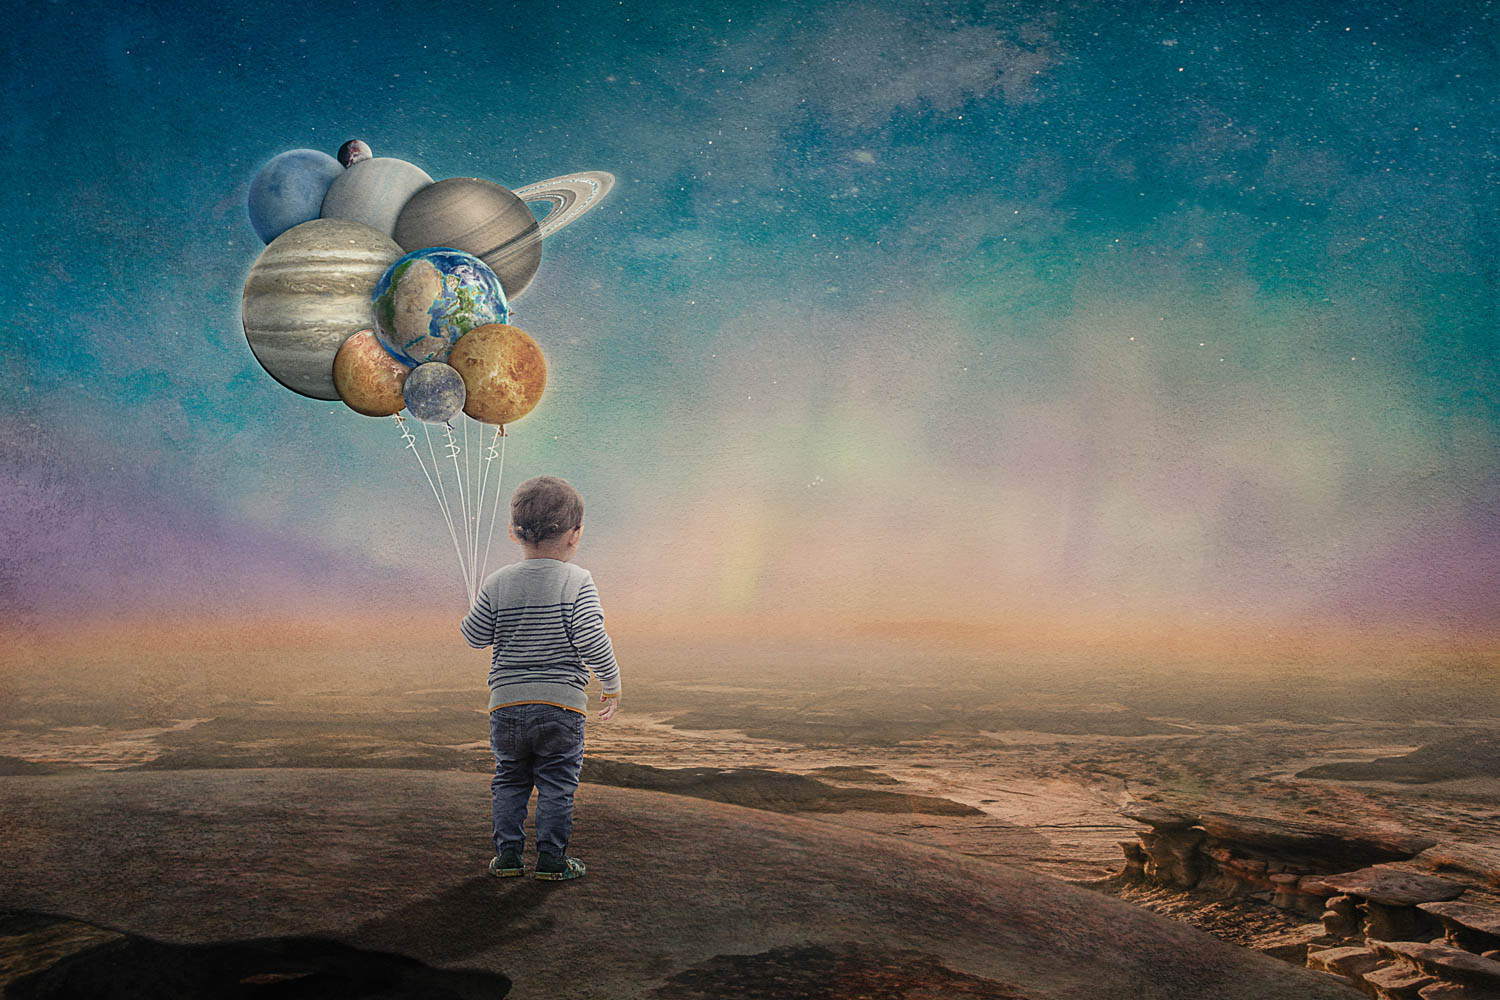 little boy at the edge of the world watching the sun rise and holding planet balloons storybook composite